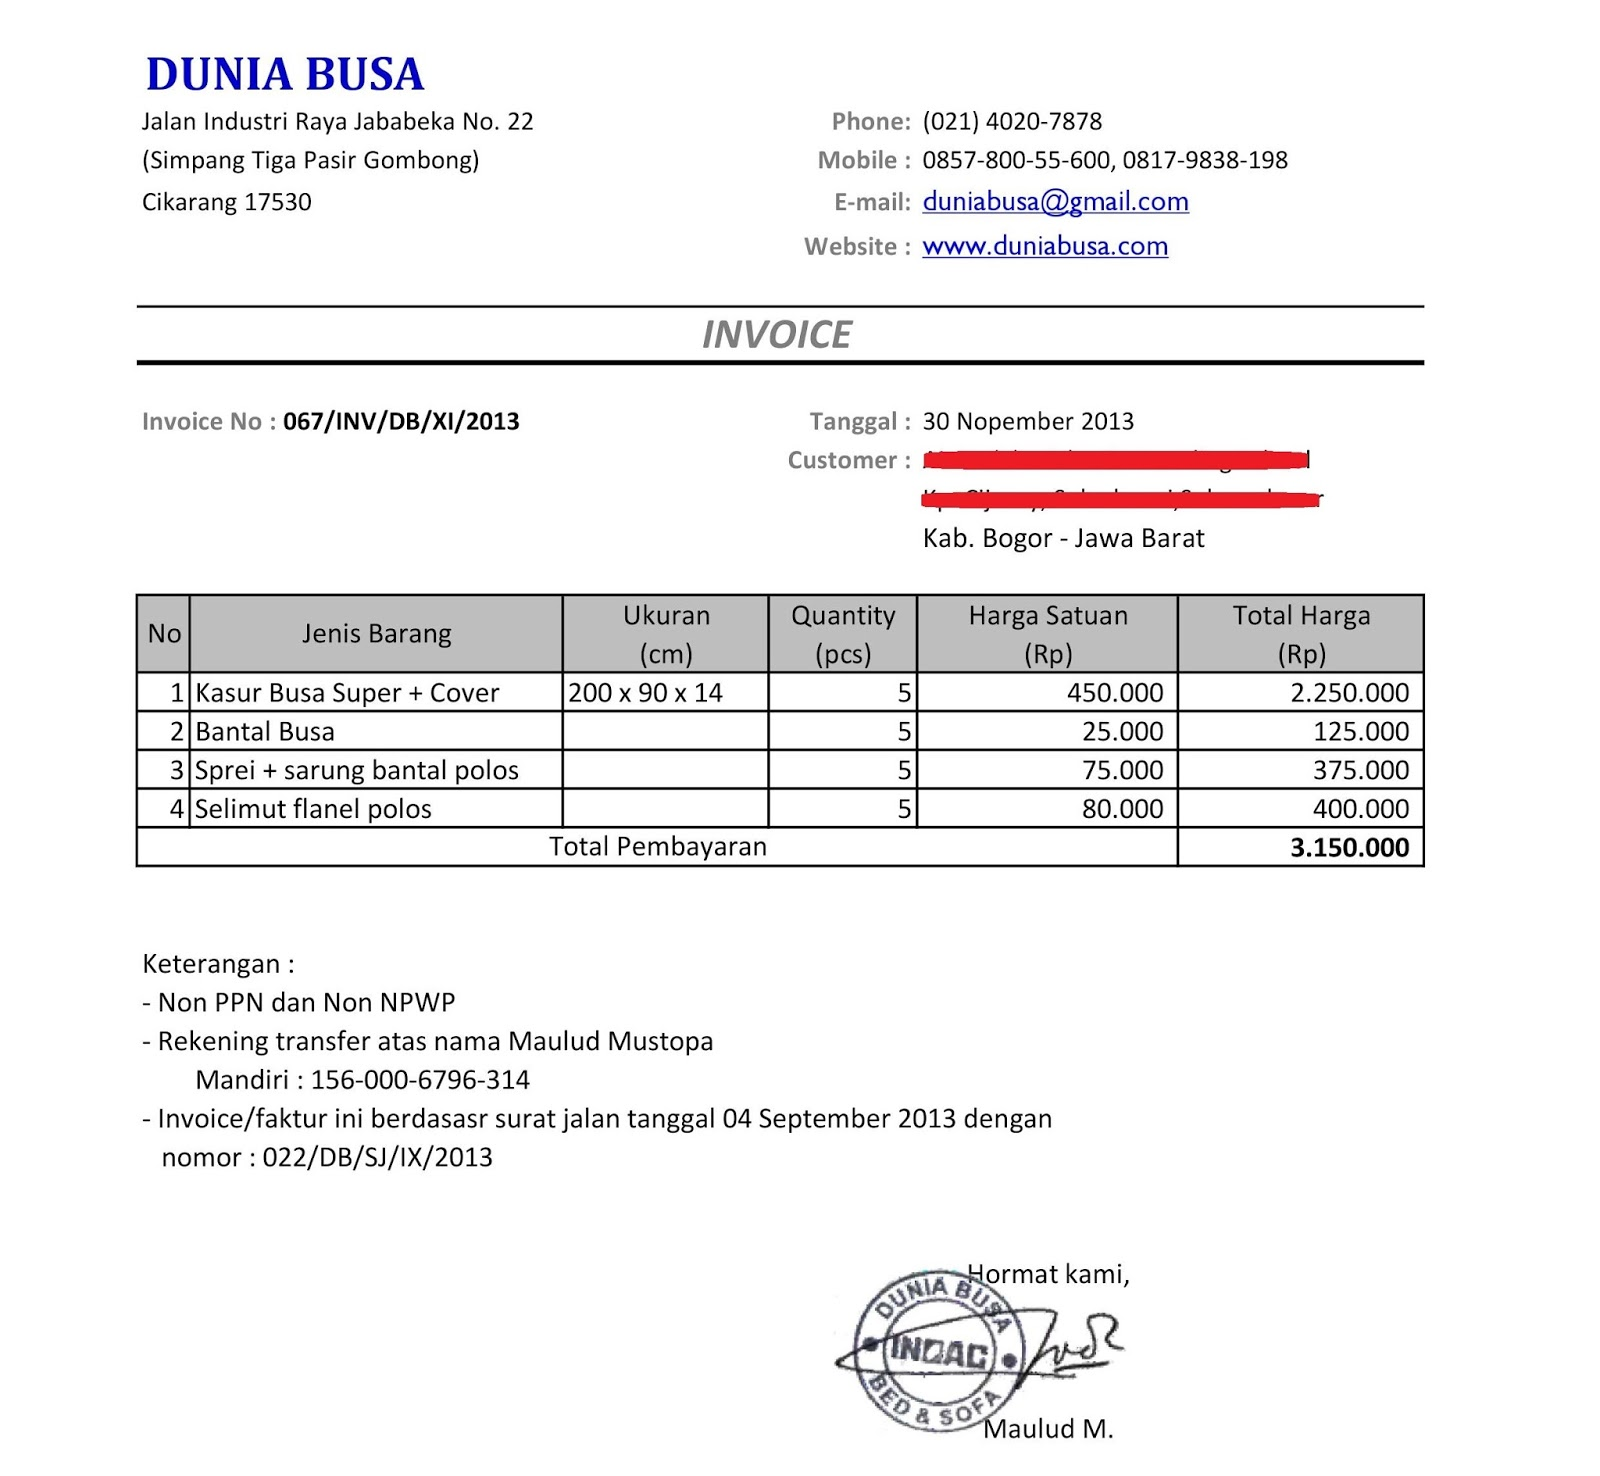 Barneybonesus  Pretty Free Invoice Online  Create Invoice Online  Invoice Template  With Fascinating Contoh Format Invoice Atau Surat Tagihan  Brankas Arsip  Free Invoice Online With Appealing Ford Raptor Invoice Price Also Ups Invoice Scam In Addition How Do You Invoice Someone On Paypal And When To Invoice A Customer As Well As Hvac Invoices Templates Additionally Sample Invoice Format Word From Sklepco With Barneybonesus  Fascinating Free Invoice Online  Create Invoice Online  Invoice Template  With Appealing Contoh Format Invoice Atau Surat Tagihan  Brankas Arsip  Free Invoice Online And Pretty Ford Raptor Invoice Price Also Ups Invoice Scam In Addition How Do You Invoice Someone On Paypal From Sklepco